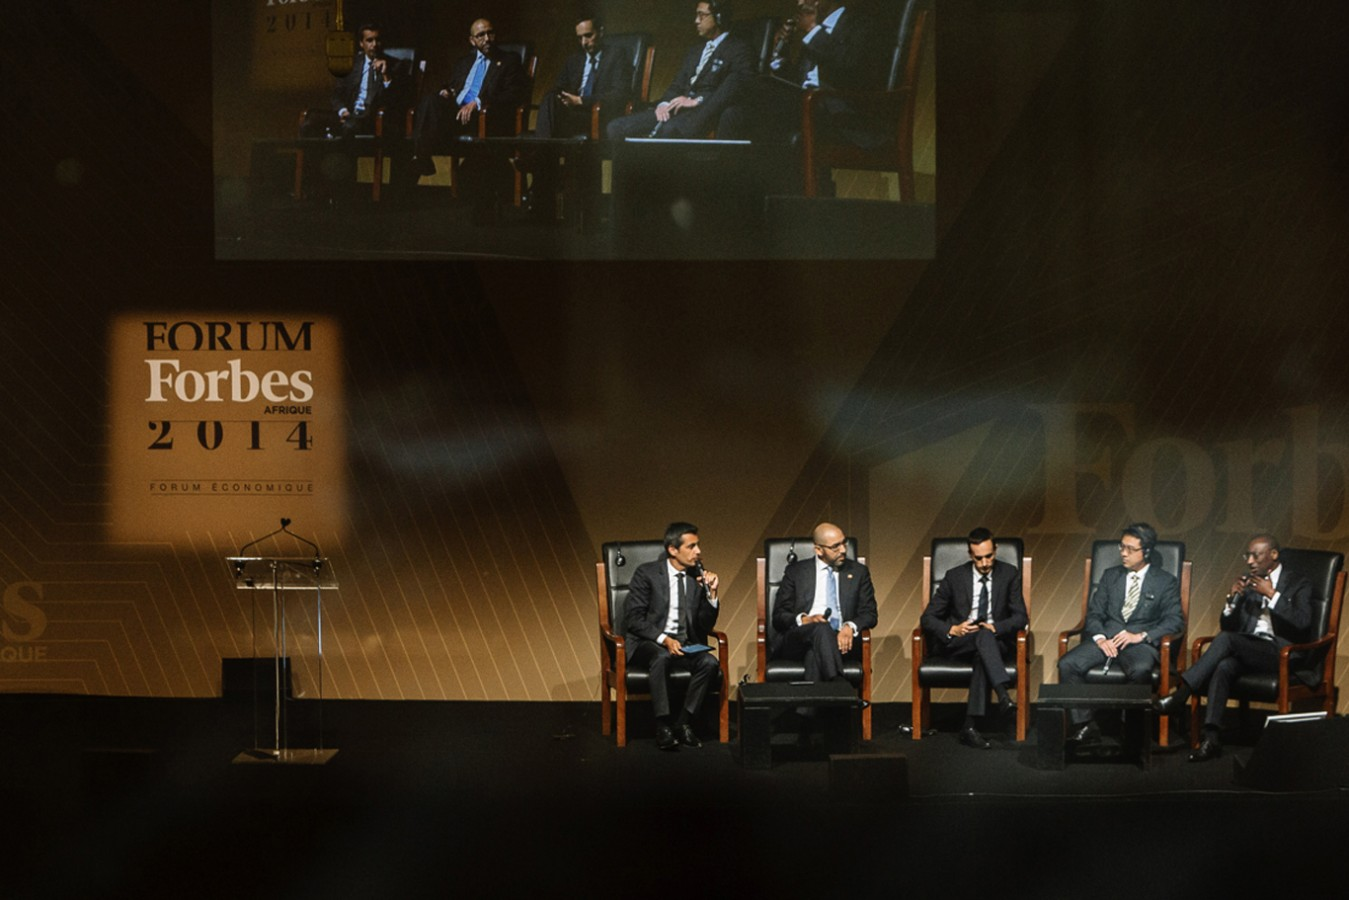 # FORBES - Forum - Congo - 2014 - Agence HavasEvent